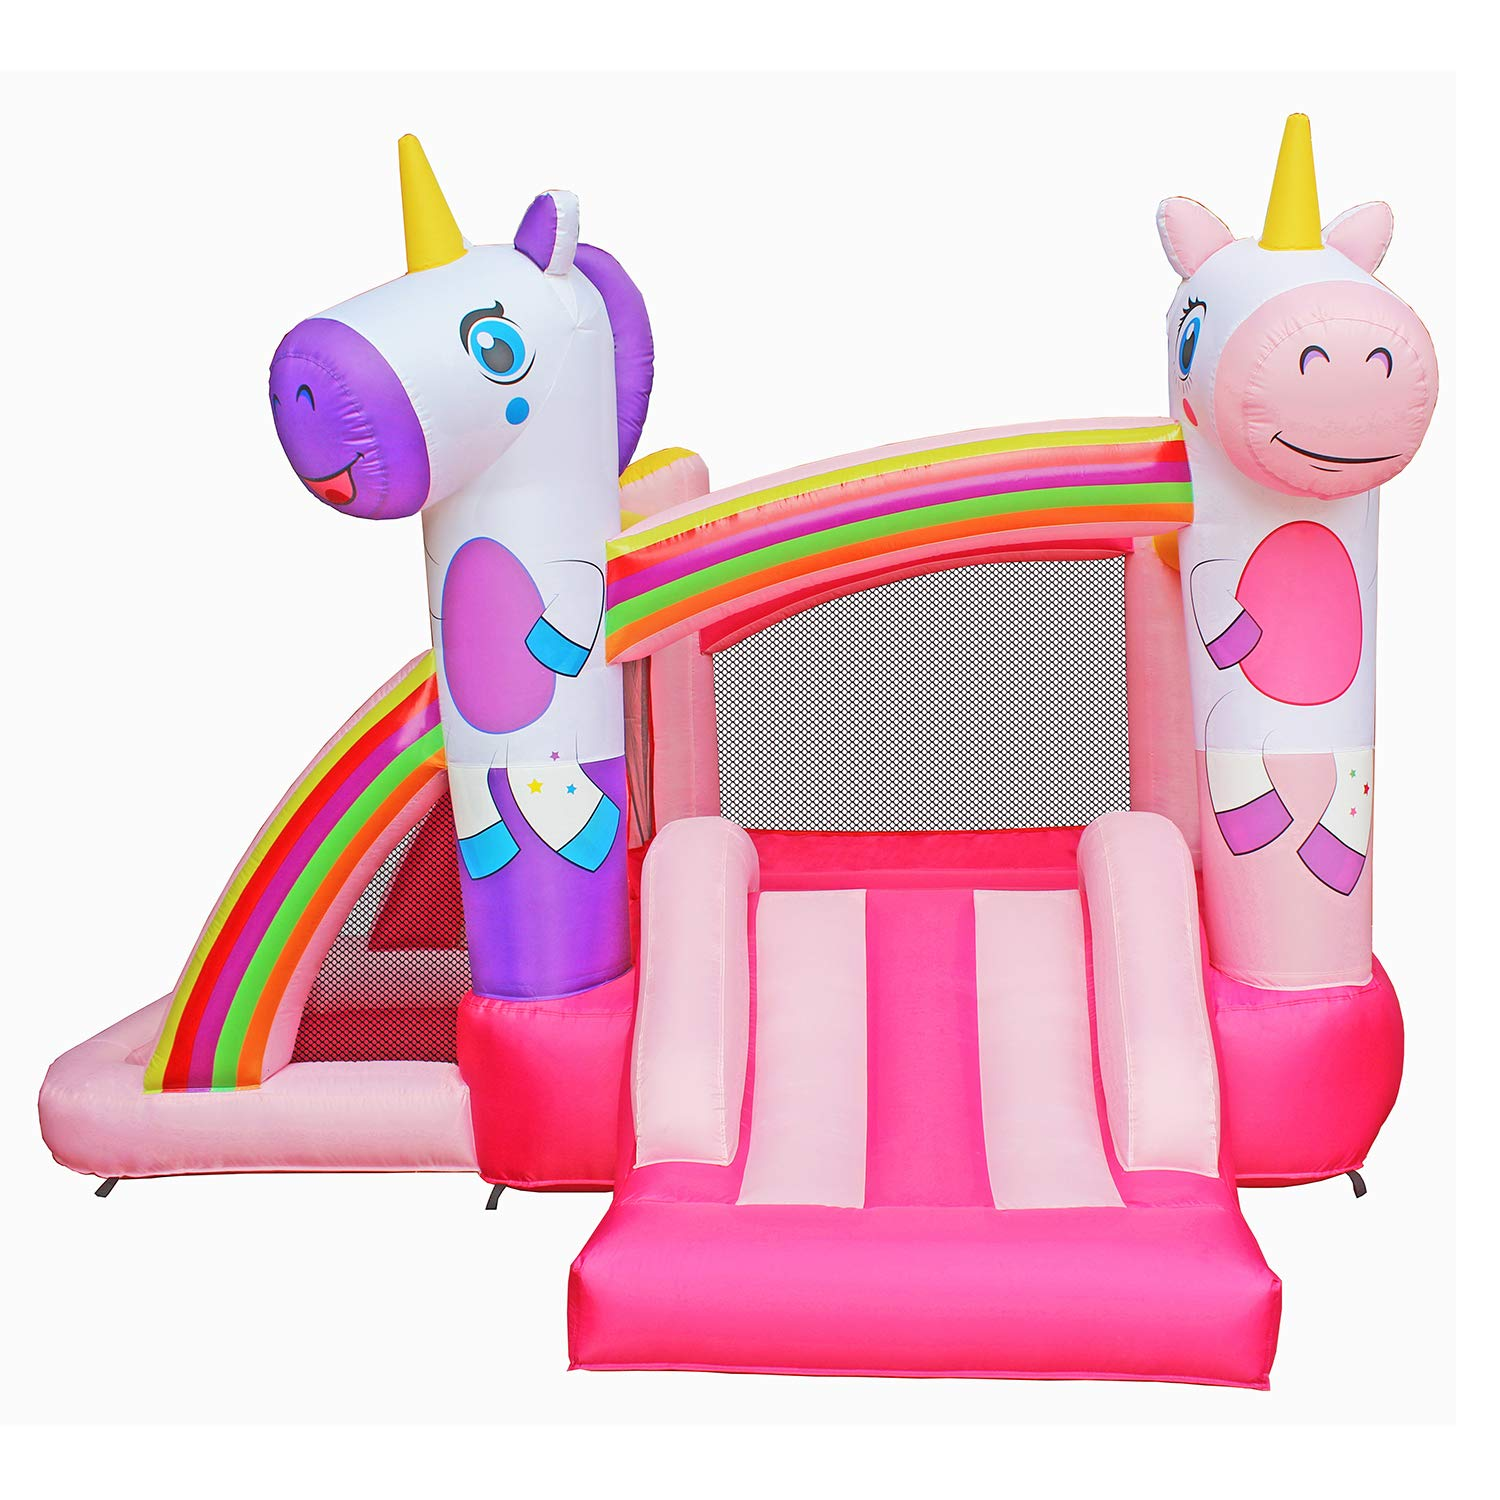 BESTPARTY Inflatable Bounce House with Slide for Princess Pink Unicorn Inflatable Bouncer House Jumper Houses by BESTPARTY (Image #3)